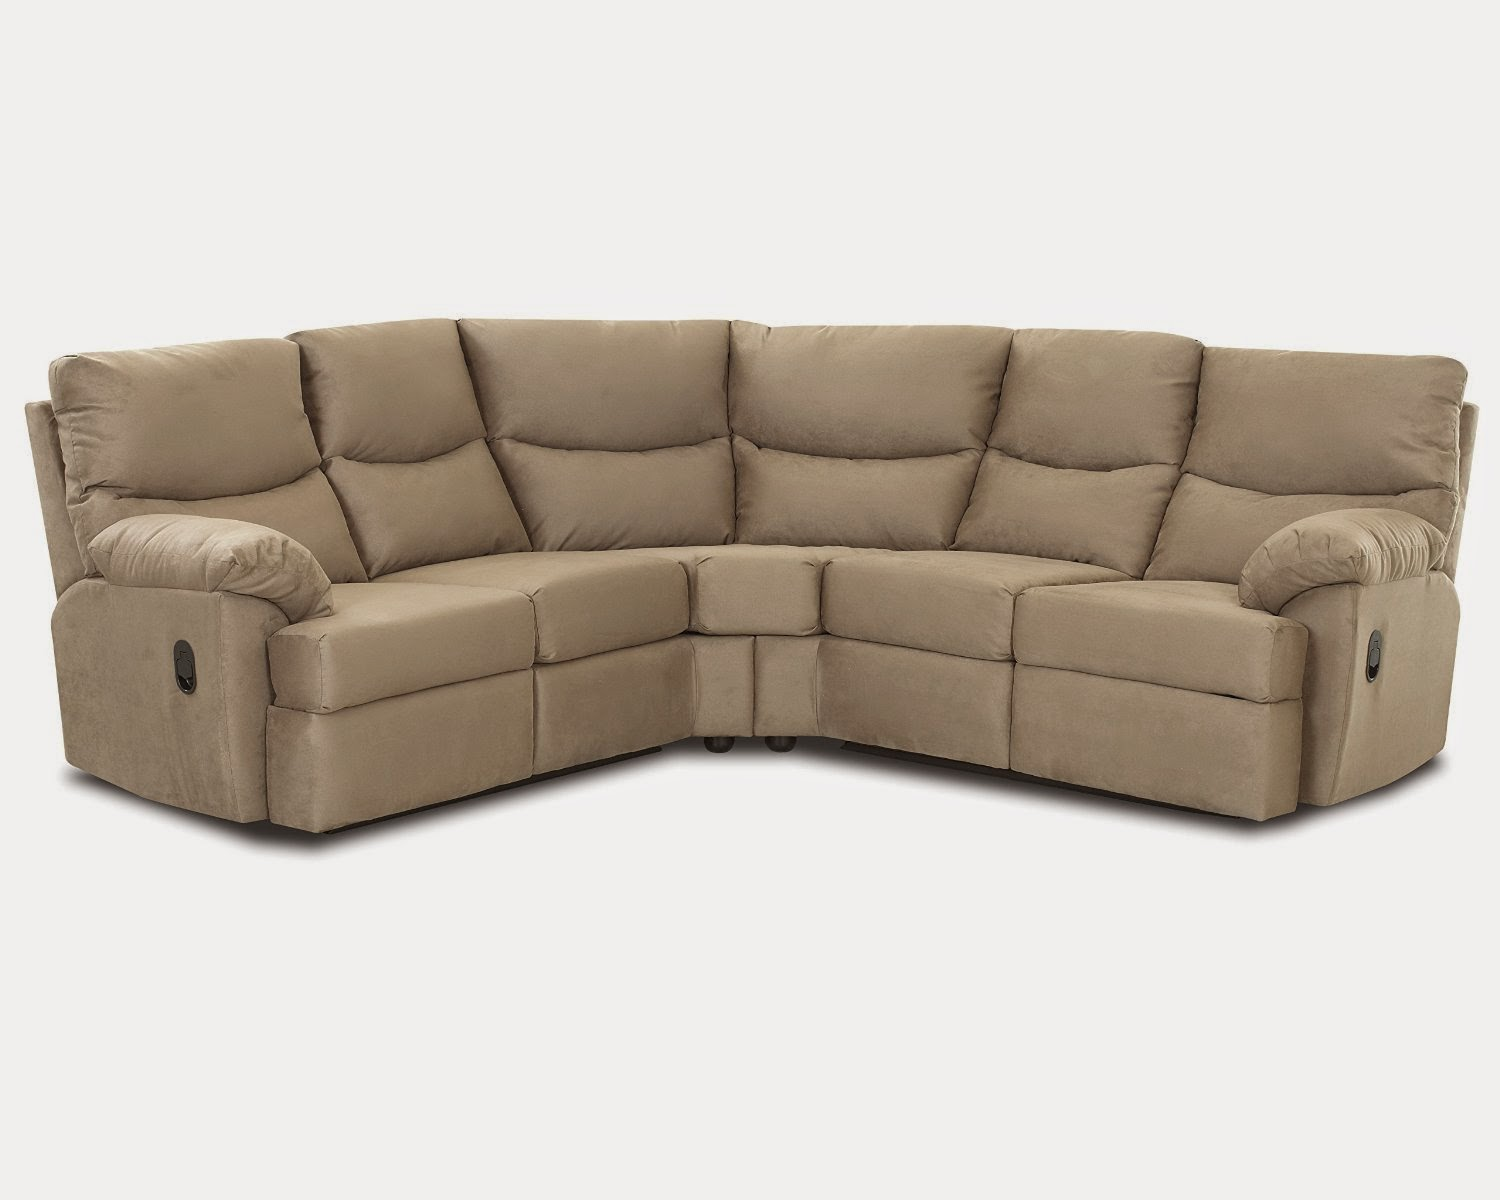 Top Seller Reclining And Recliner Sofa Loveseat: Phoenix